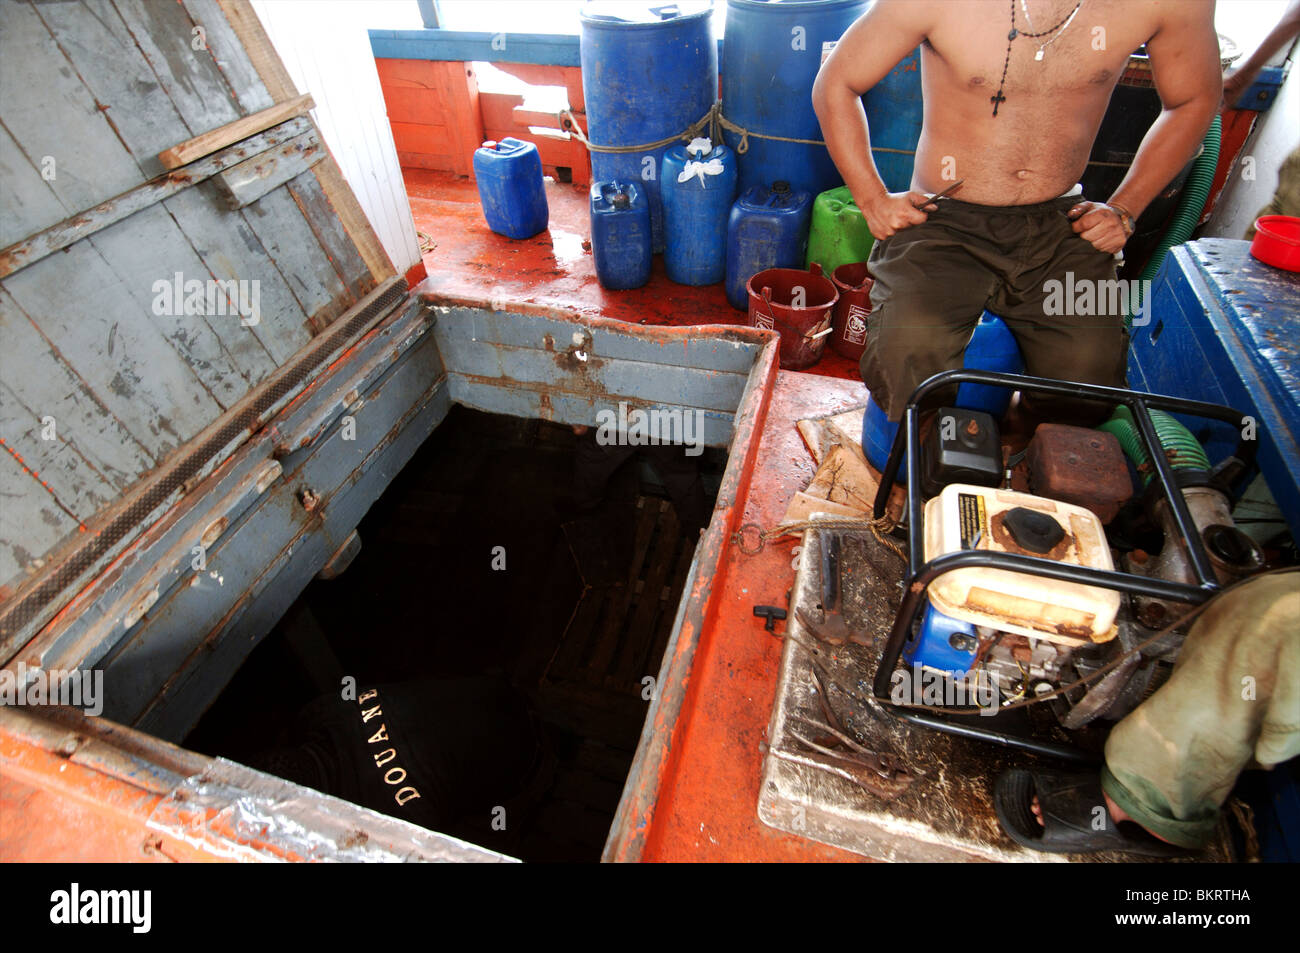 Curacao Willemstad, custom officers searching boats for drugs and contraband - Stock Image